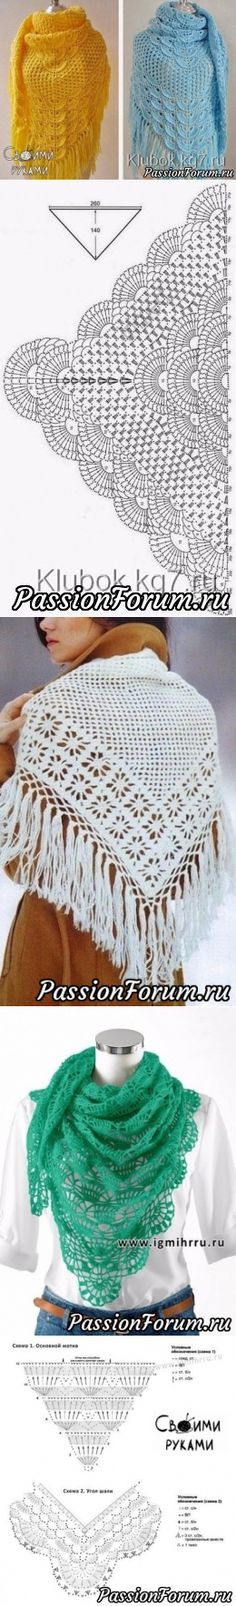 397 best CHALES, CAPAS Y MAS. images on Pinterest in 2018 | Crochet ...